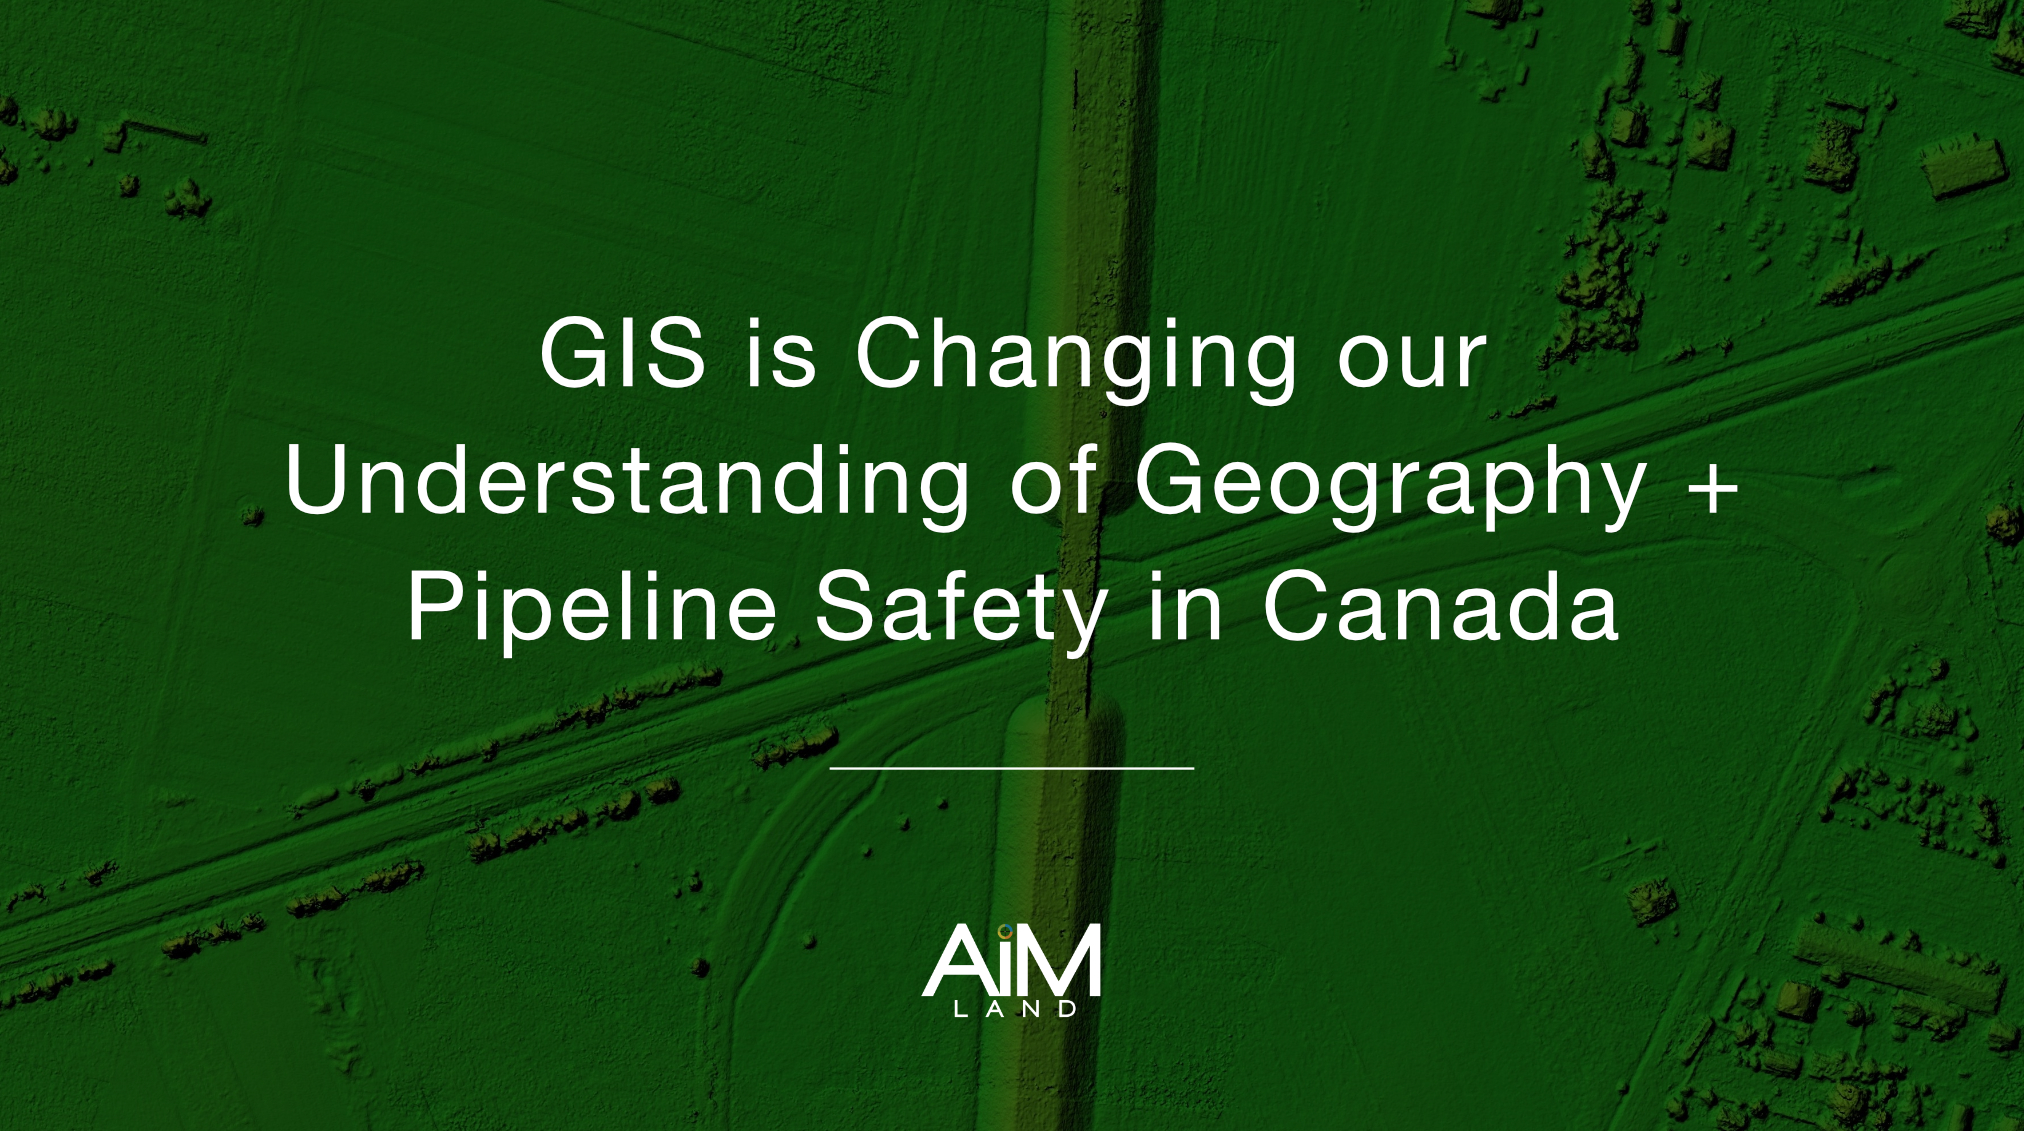 AiM Land GIS and Pipeline Safety